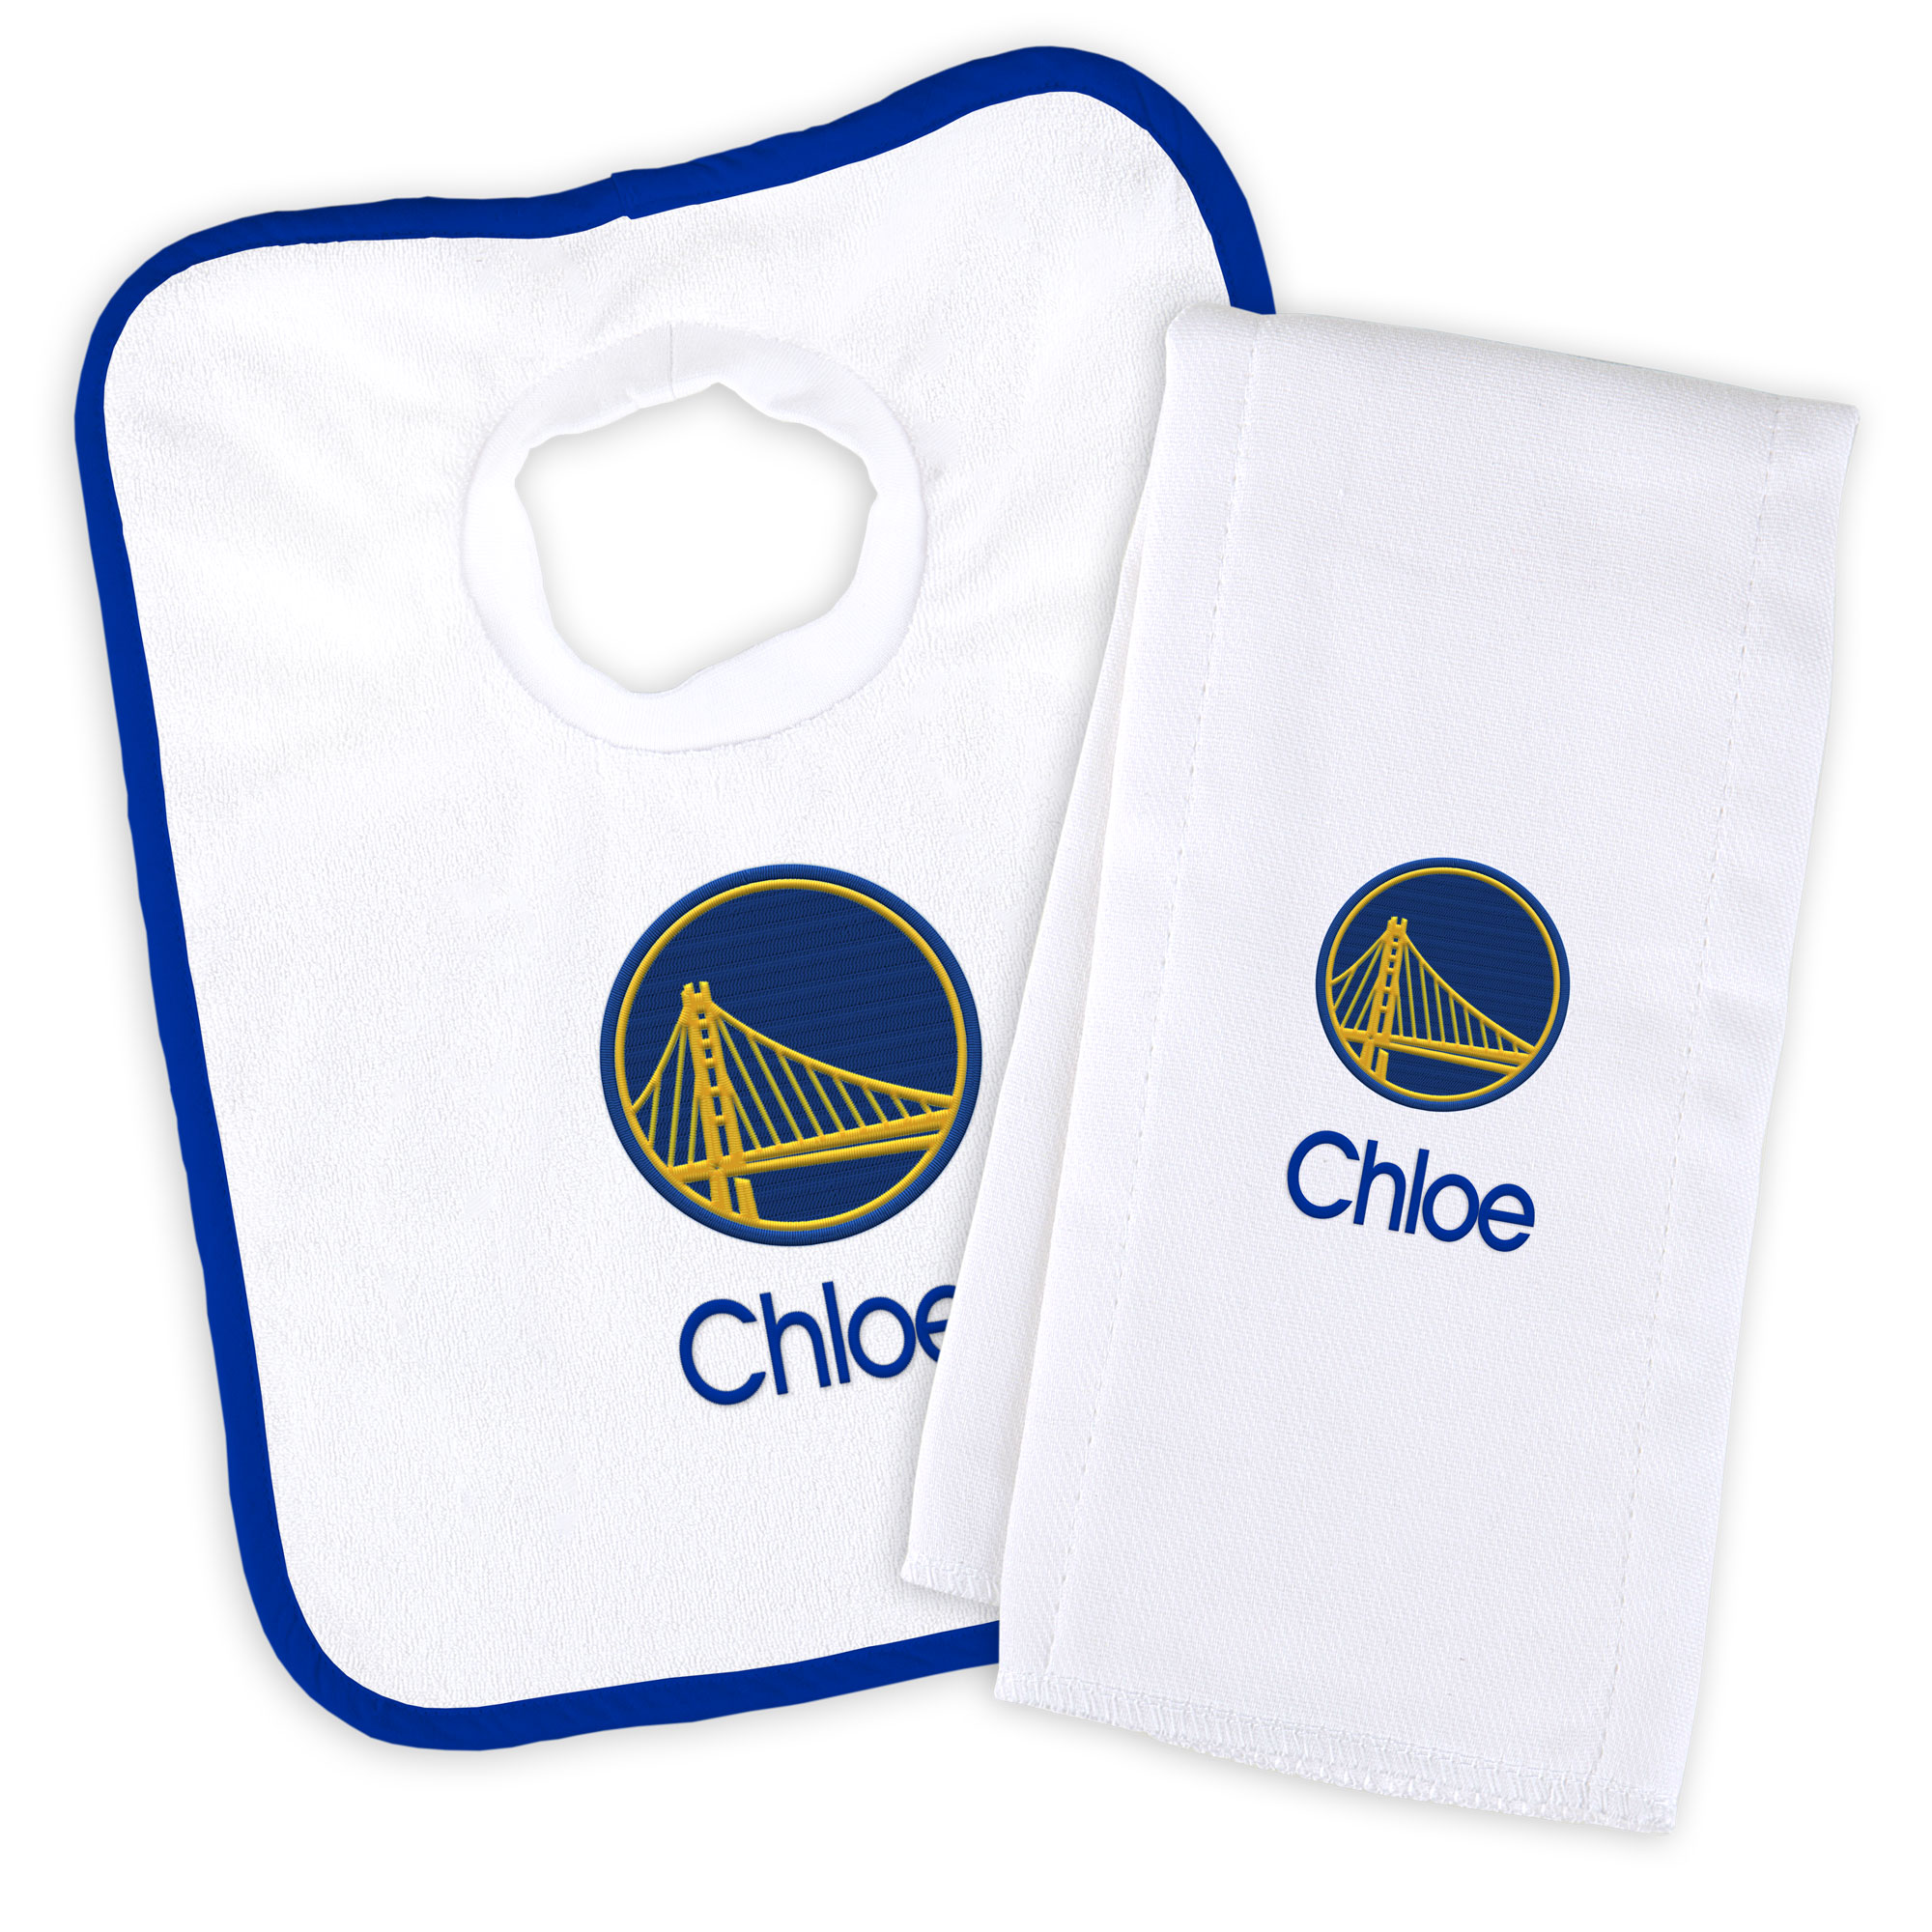 Golden State Warriors Newborn & Infant Personalized Bib & Burp Cloth Set - White